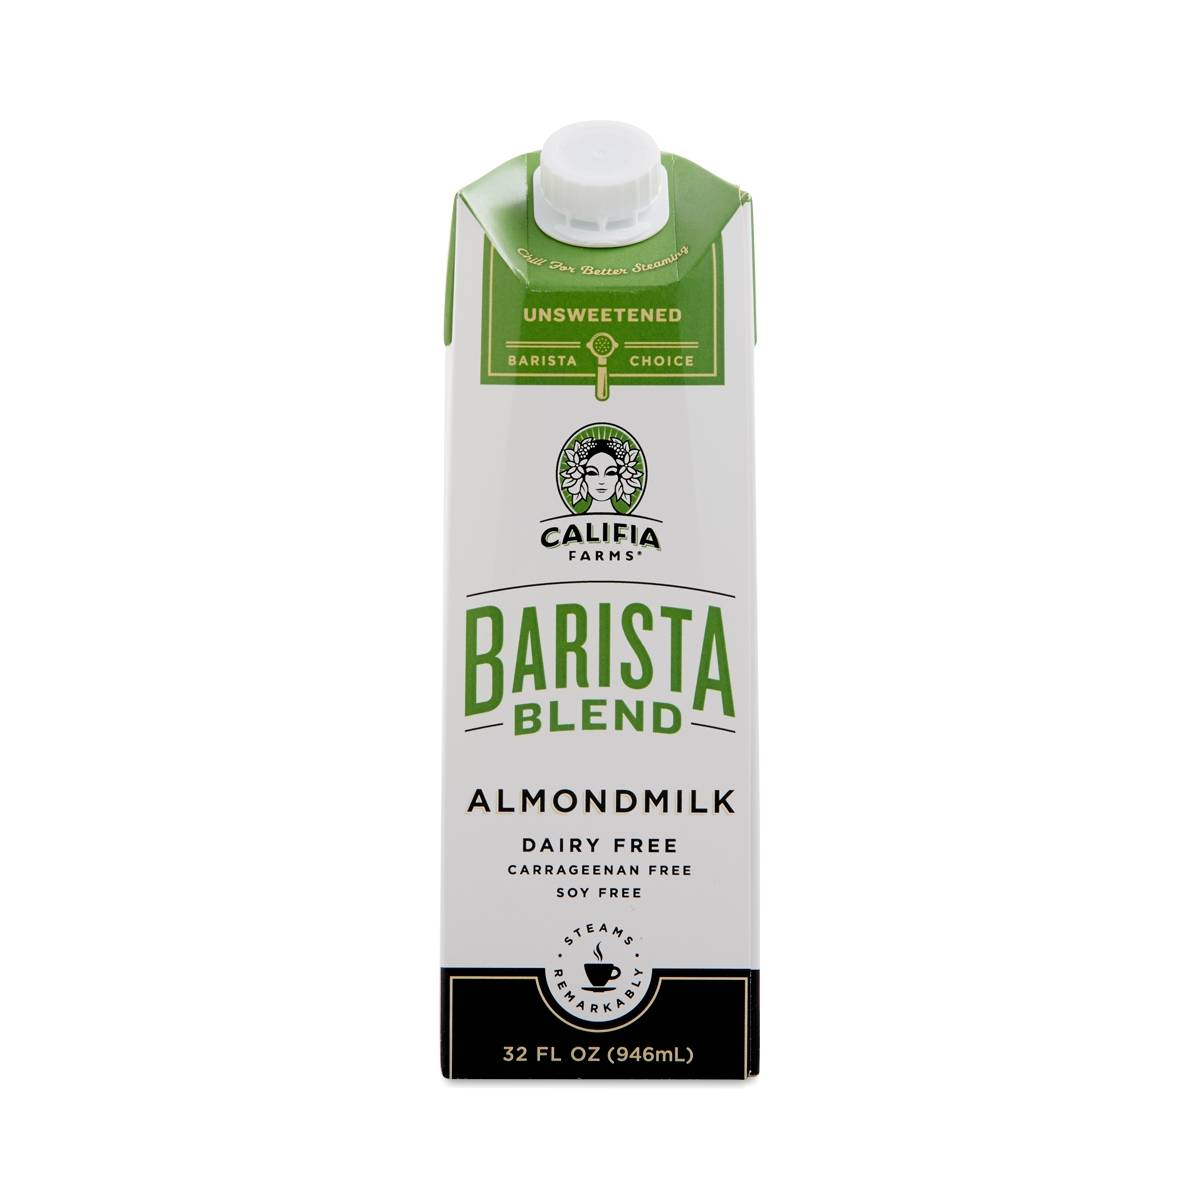 Califia Farms Almond Milk Barista Blend Unsweetened